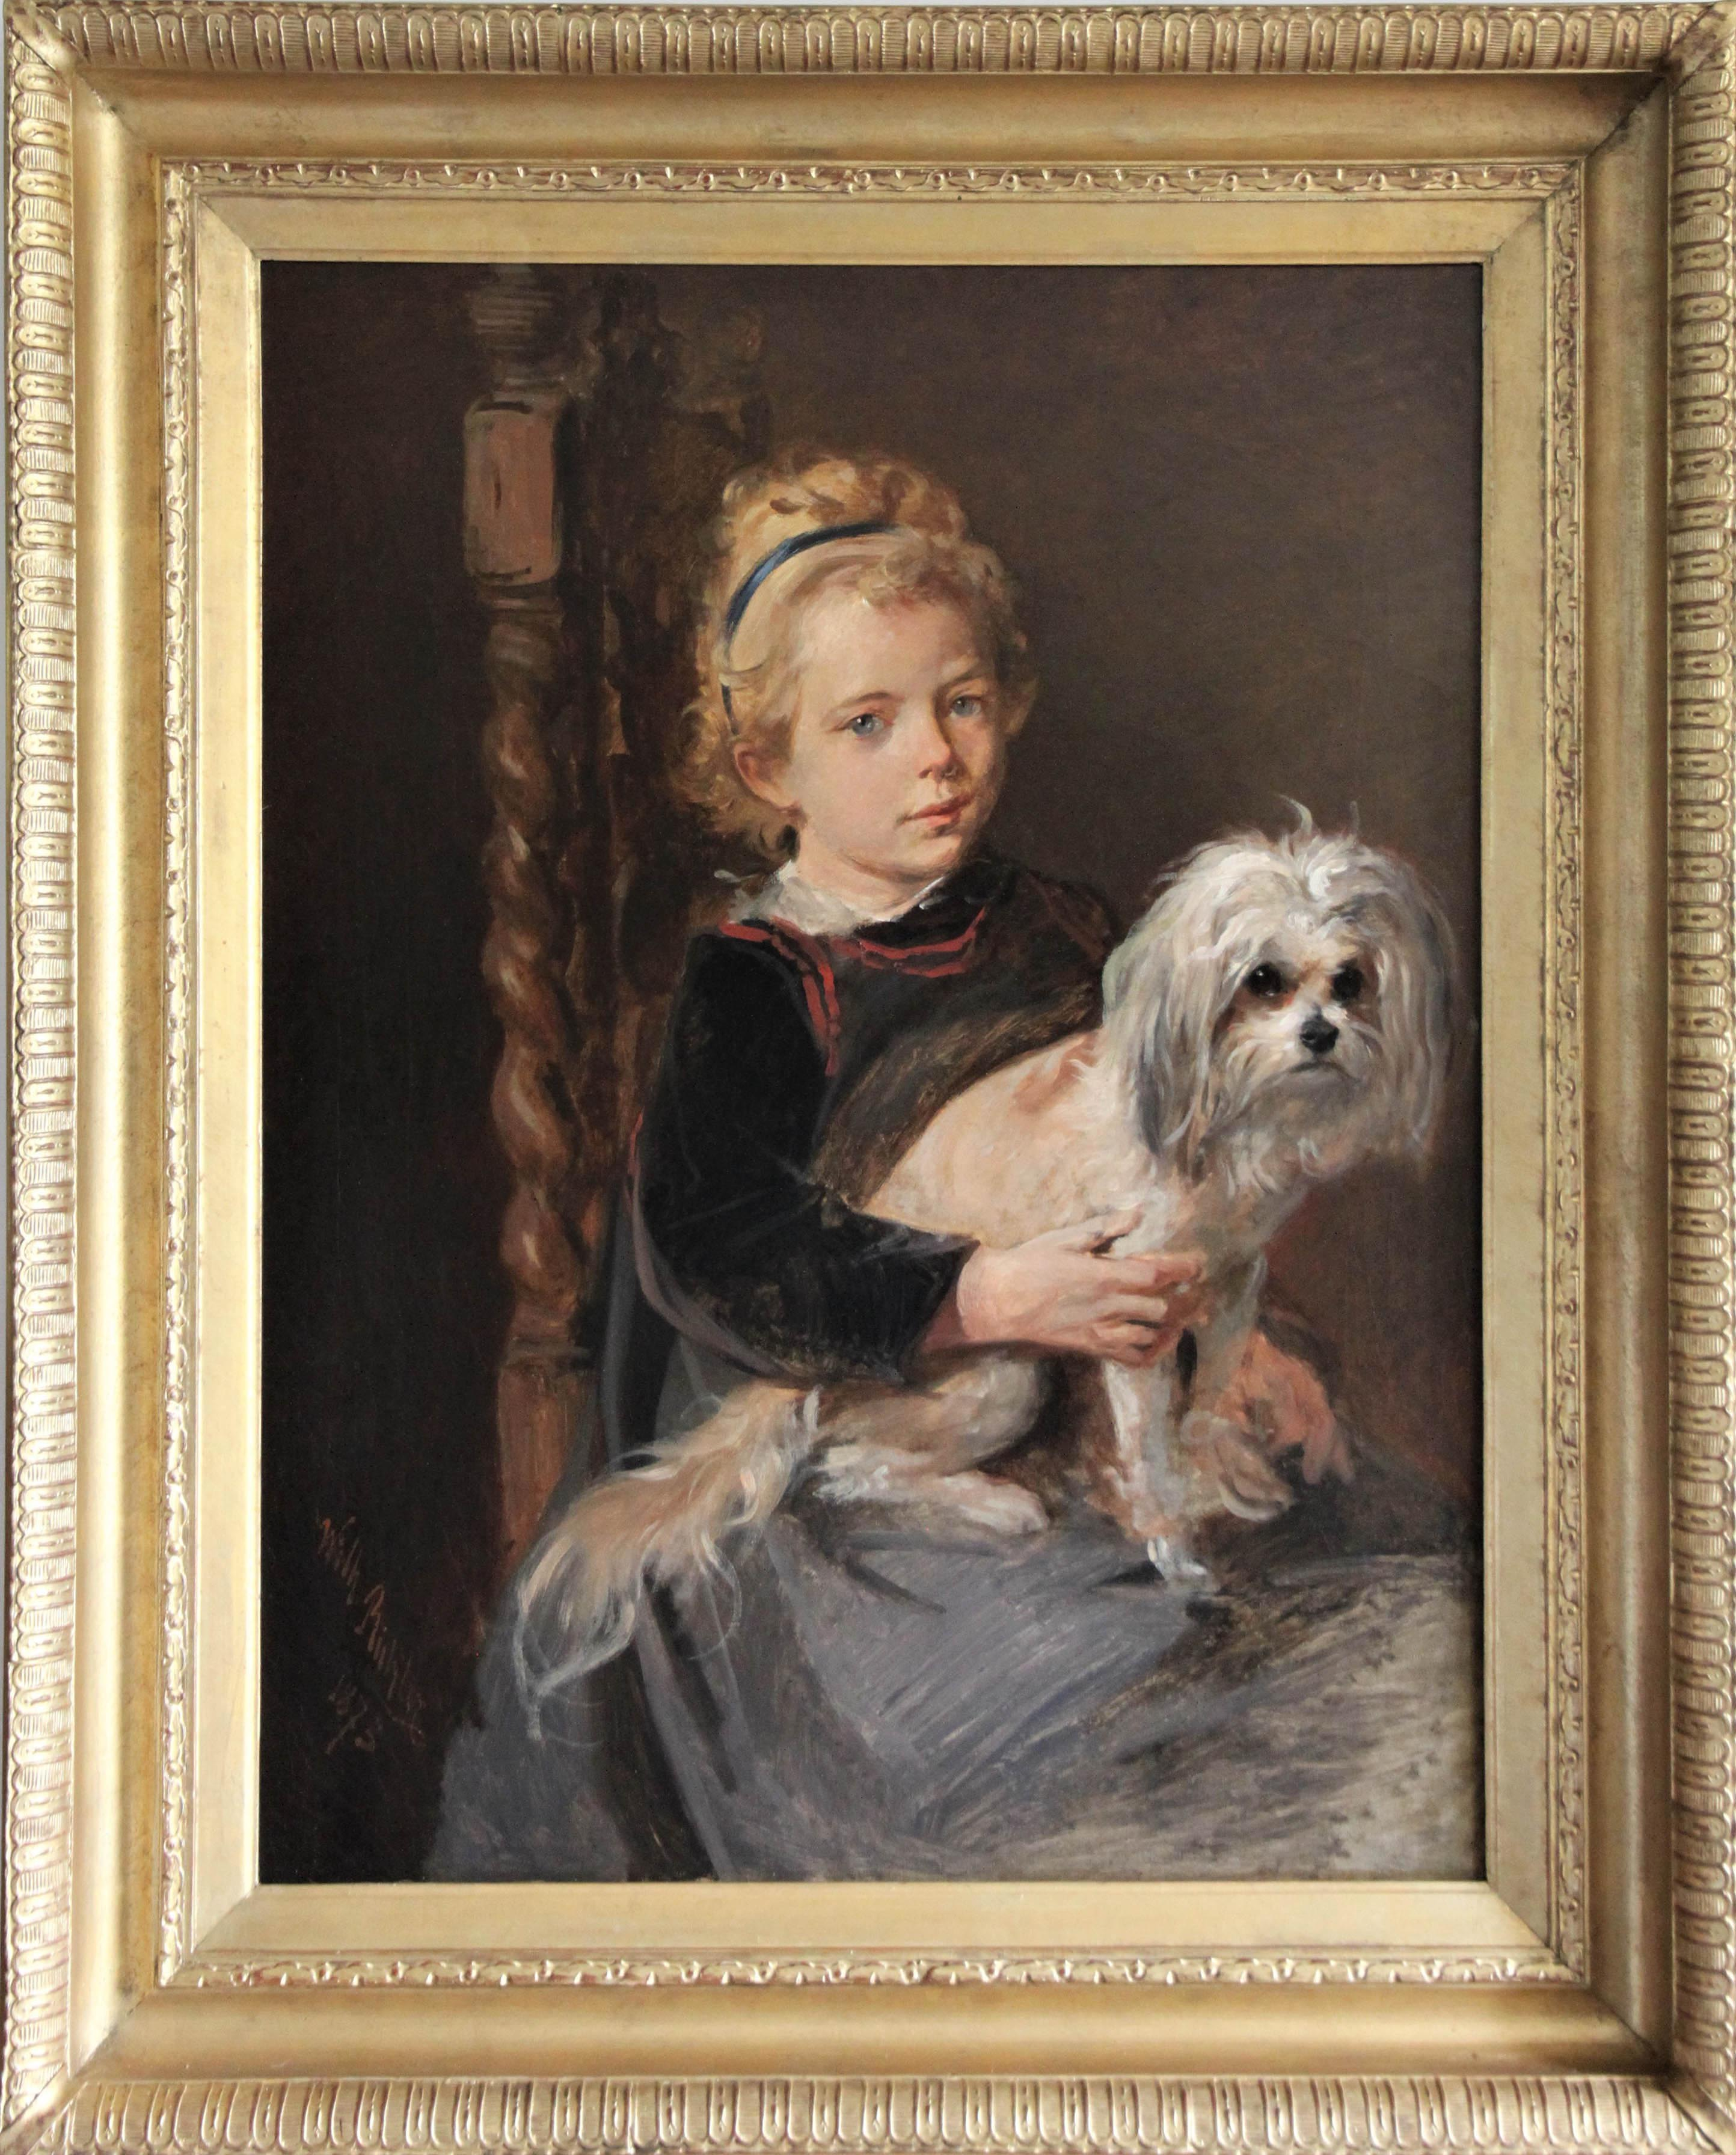 Click for larger image: Girl with Löwchen / Little Lion Dog  by Wilhelm Richter (Austrian, 1824-1892) - Girl with Löwchen / Little Lion Dog  by Wilhelm Richter (Austrian, 1824-1892)